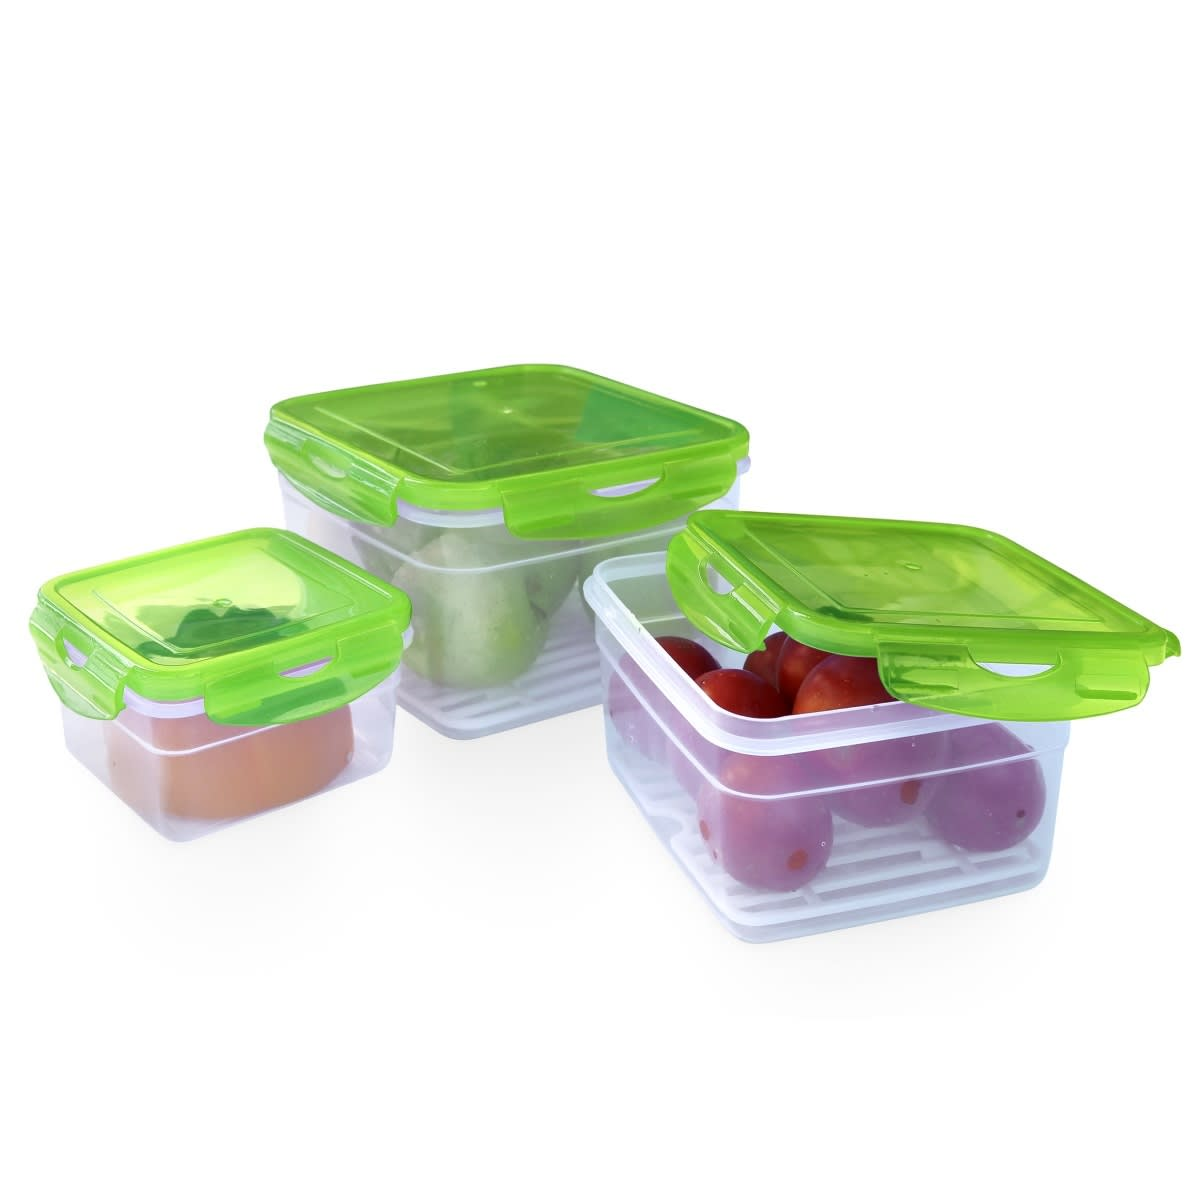 STO-KIT 3pcs food container with 4-sided lock